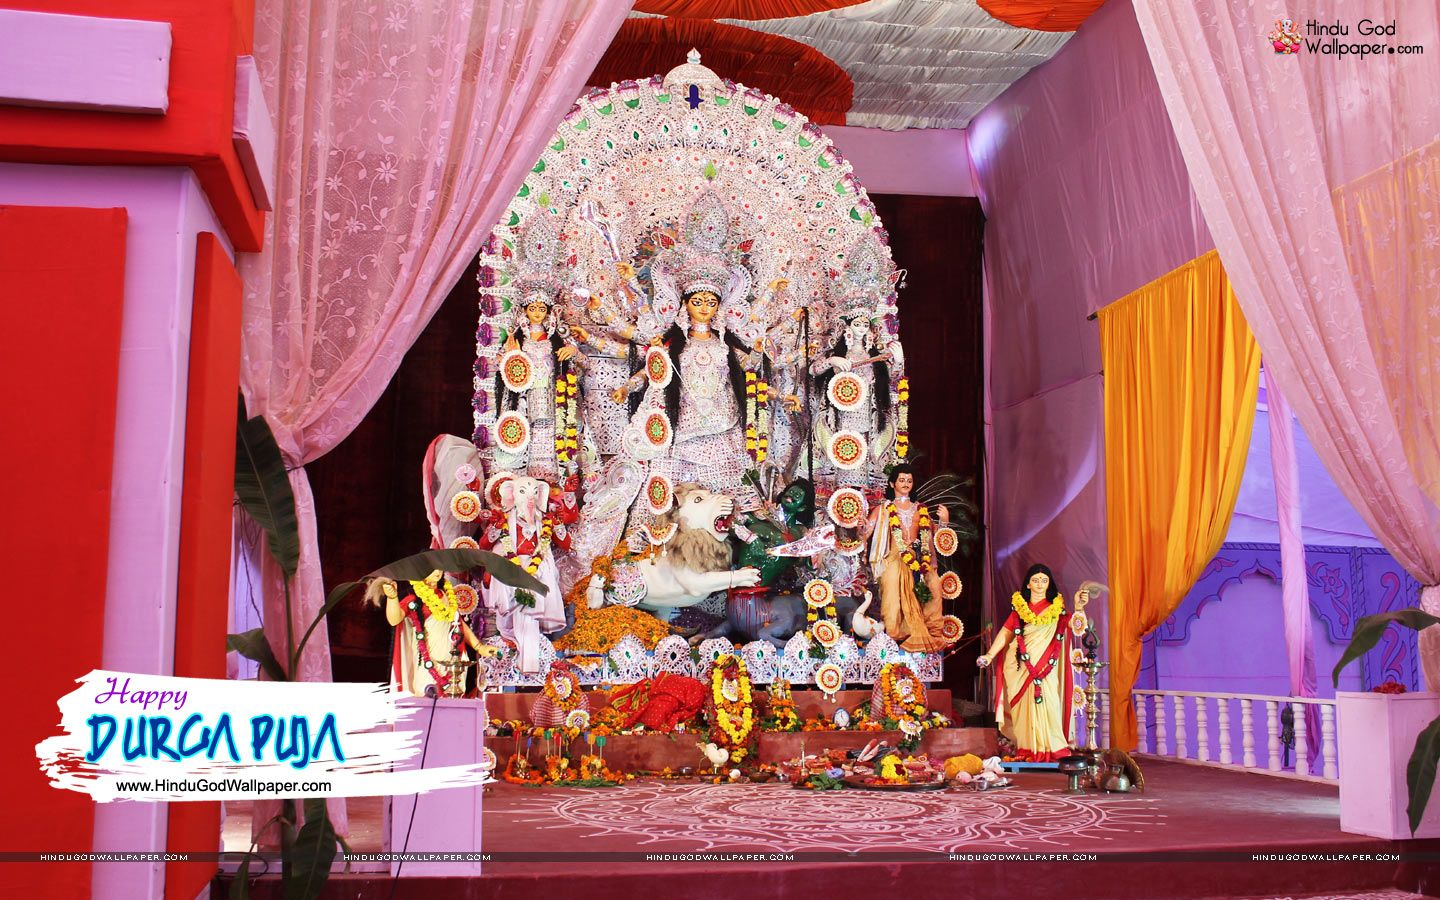 Durga puja pandal wallpaper pictures gallery durga puja durga puja pandal wallpaper pictures gallery altavistaventures Image collections